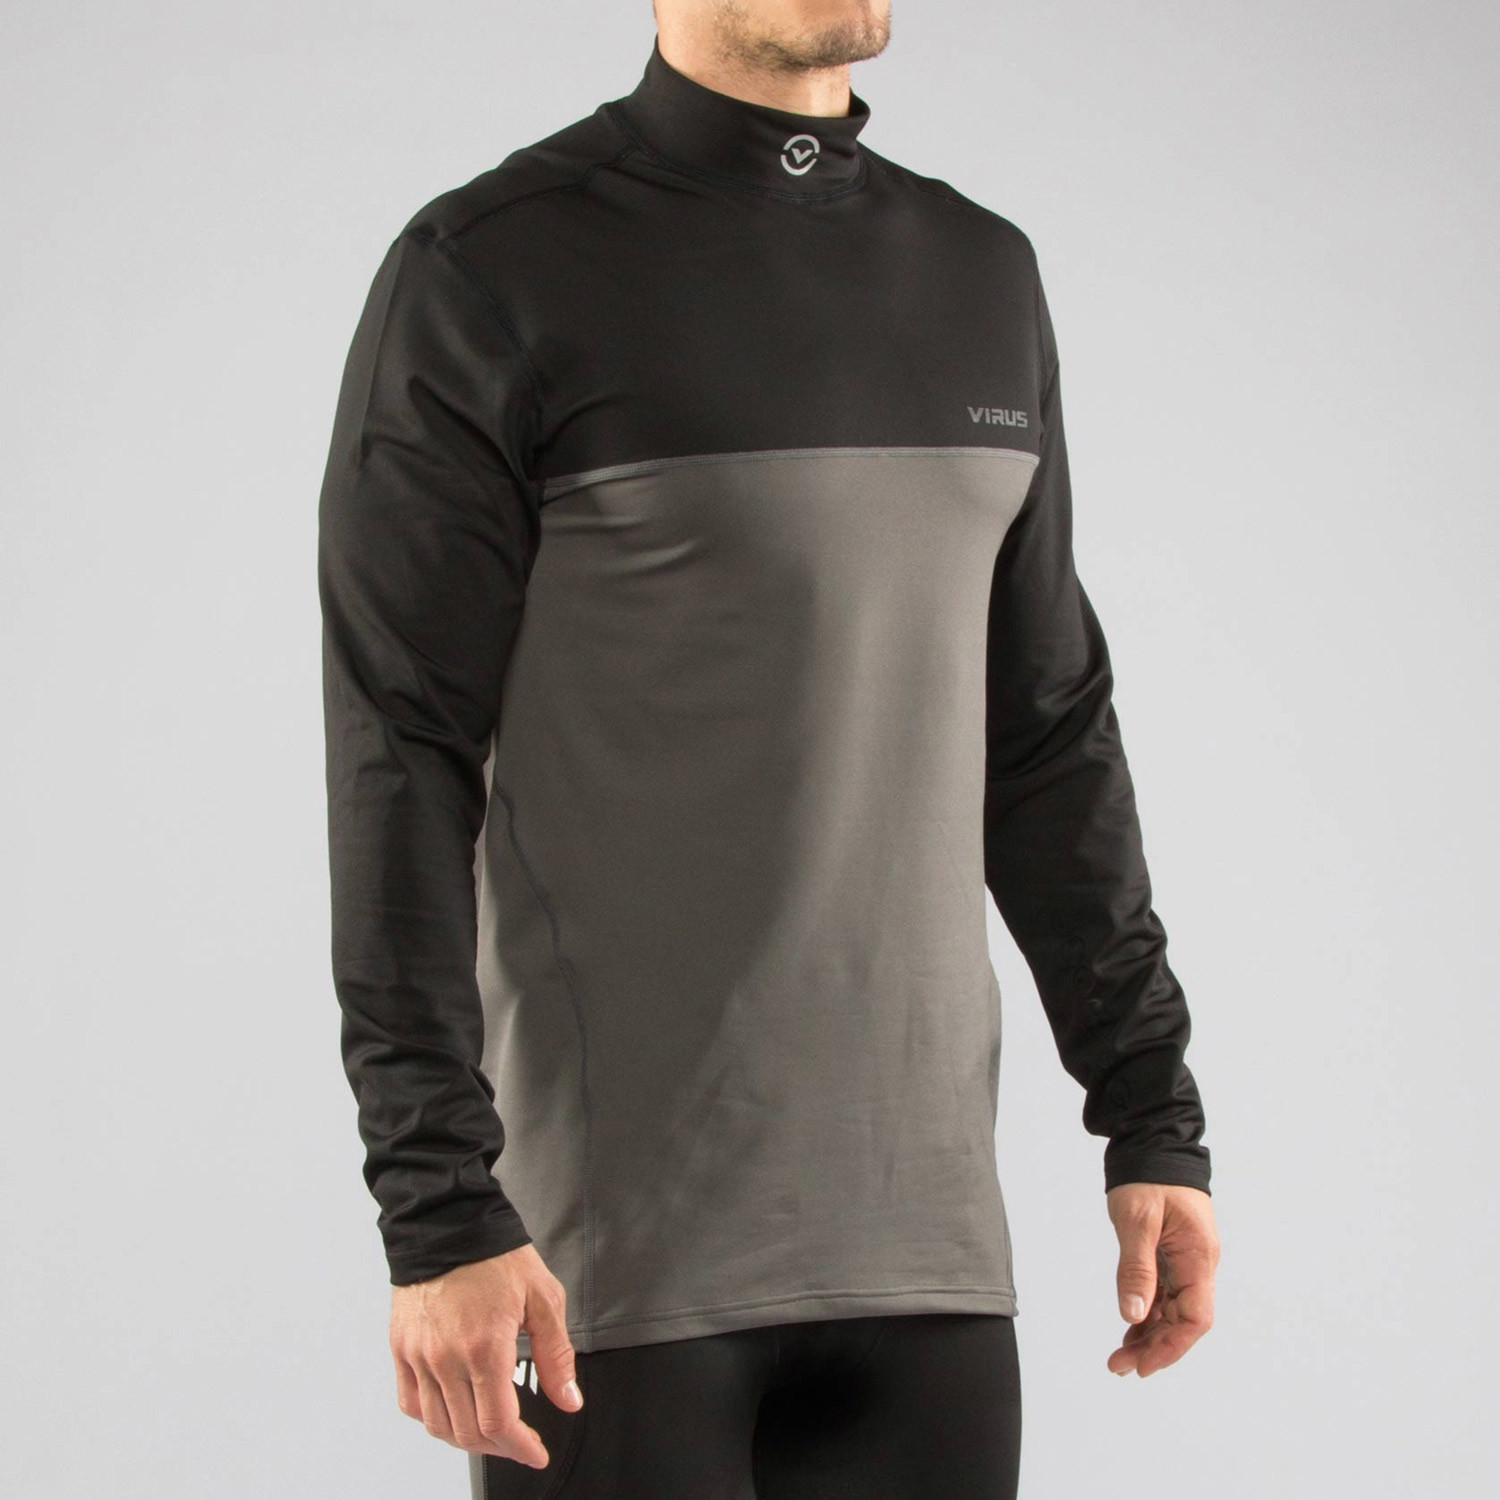 Stay Warm Long Sleeve Shirt Black Grey M Menswear